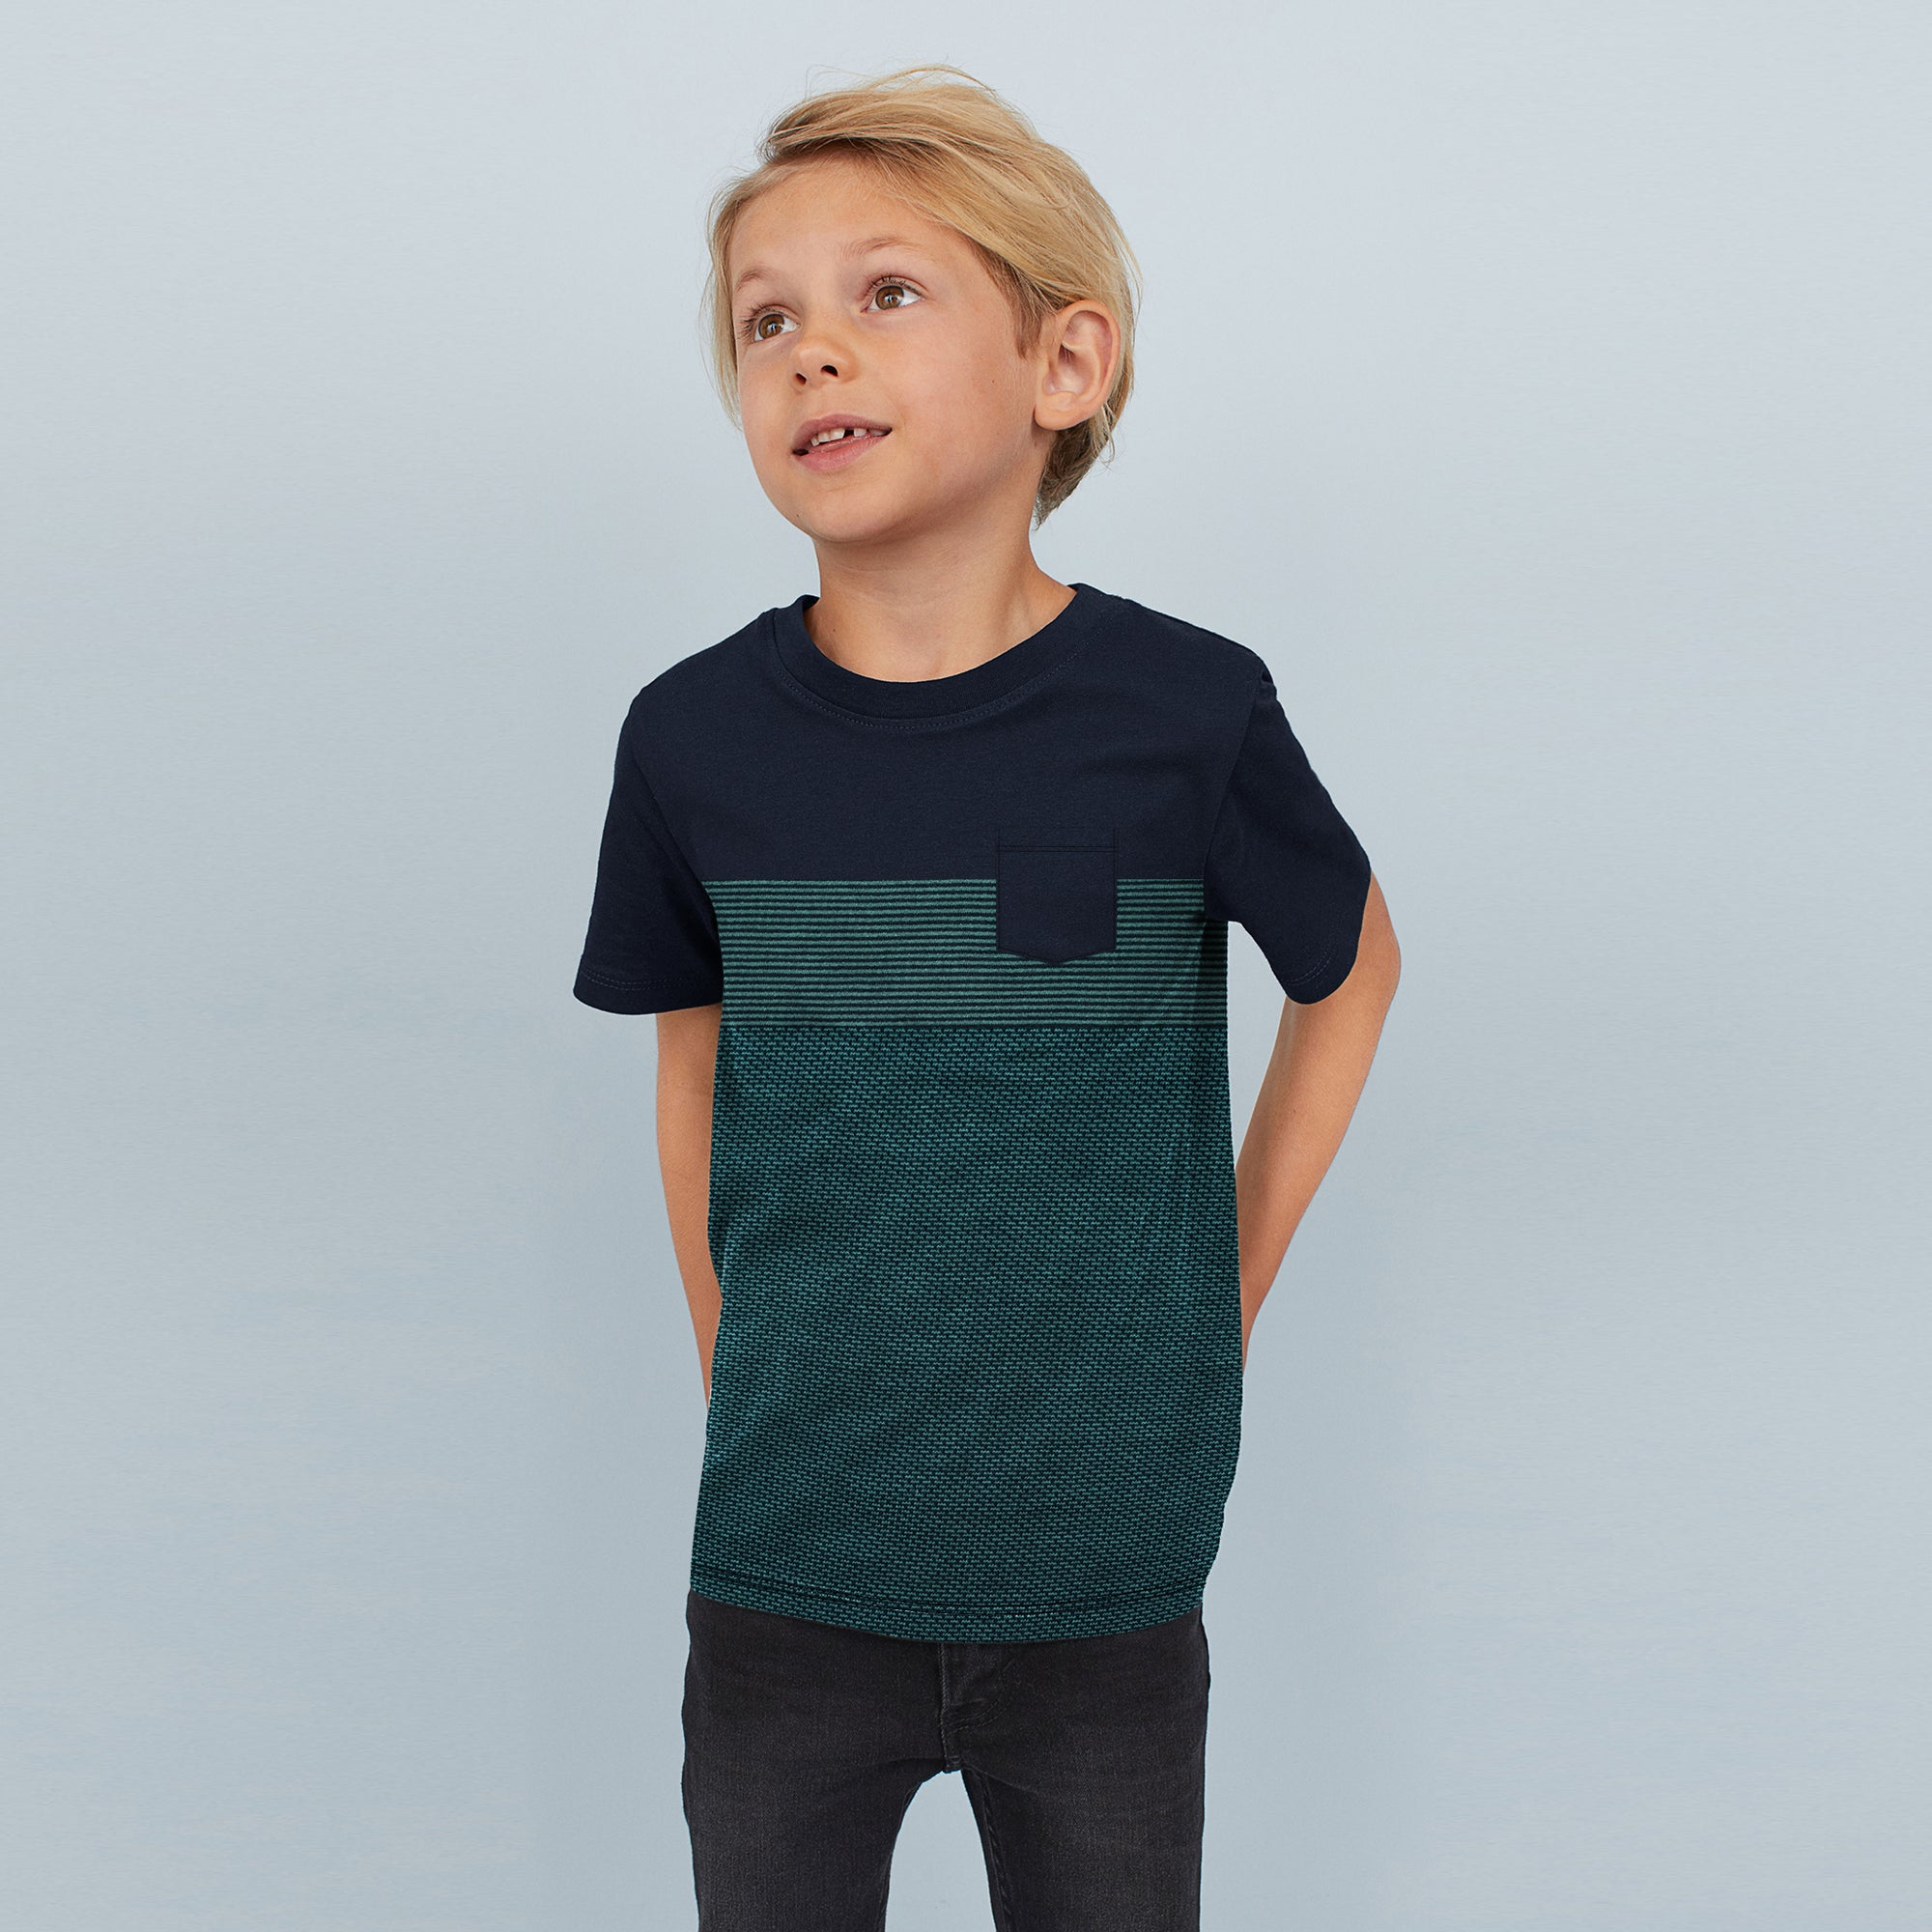 brandsego - Next Crew Neck Single Jersey T Shirt For Kids-Dark Navy with Panels-BE8261